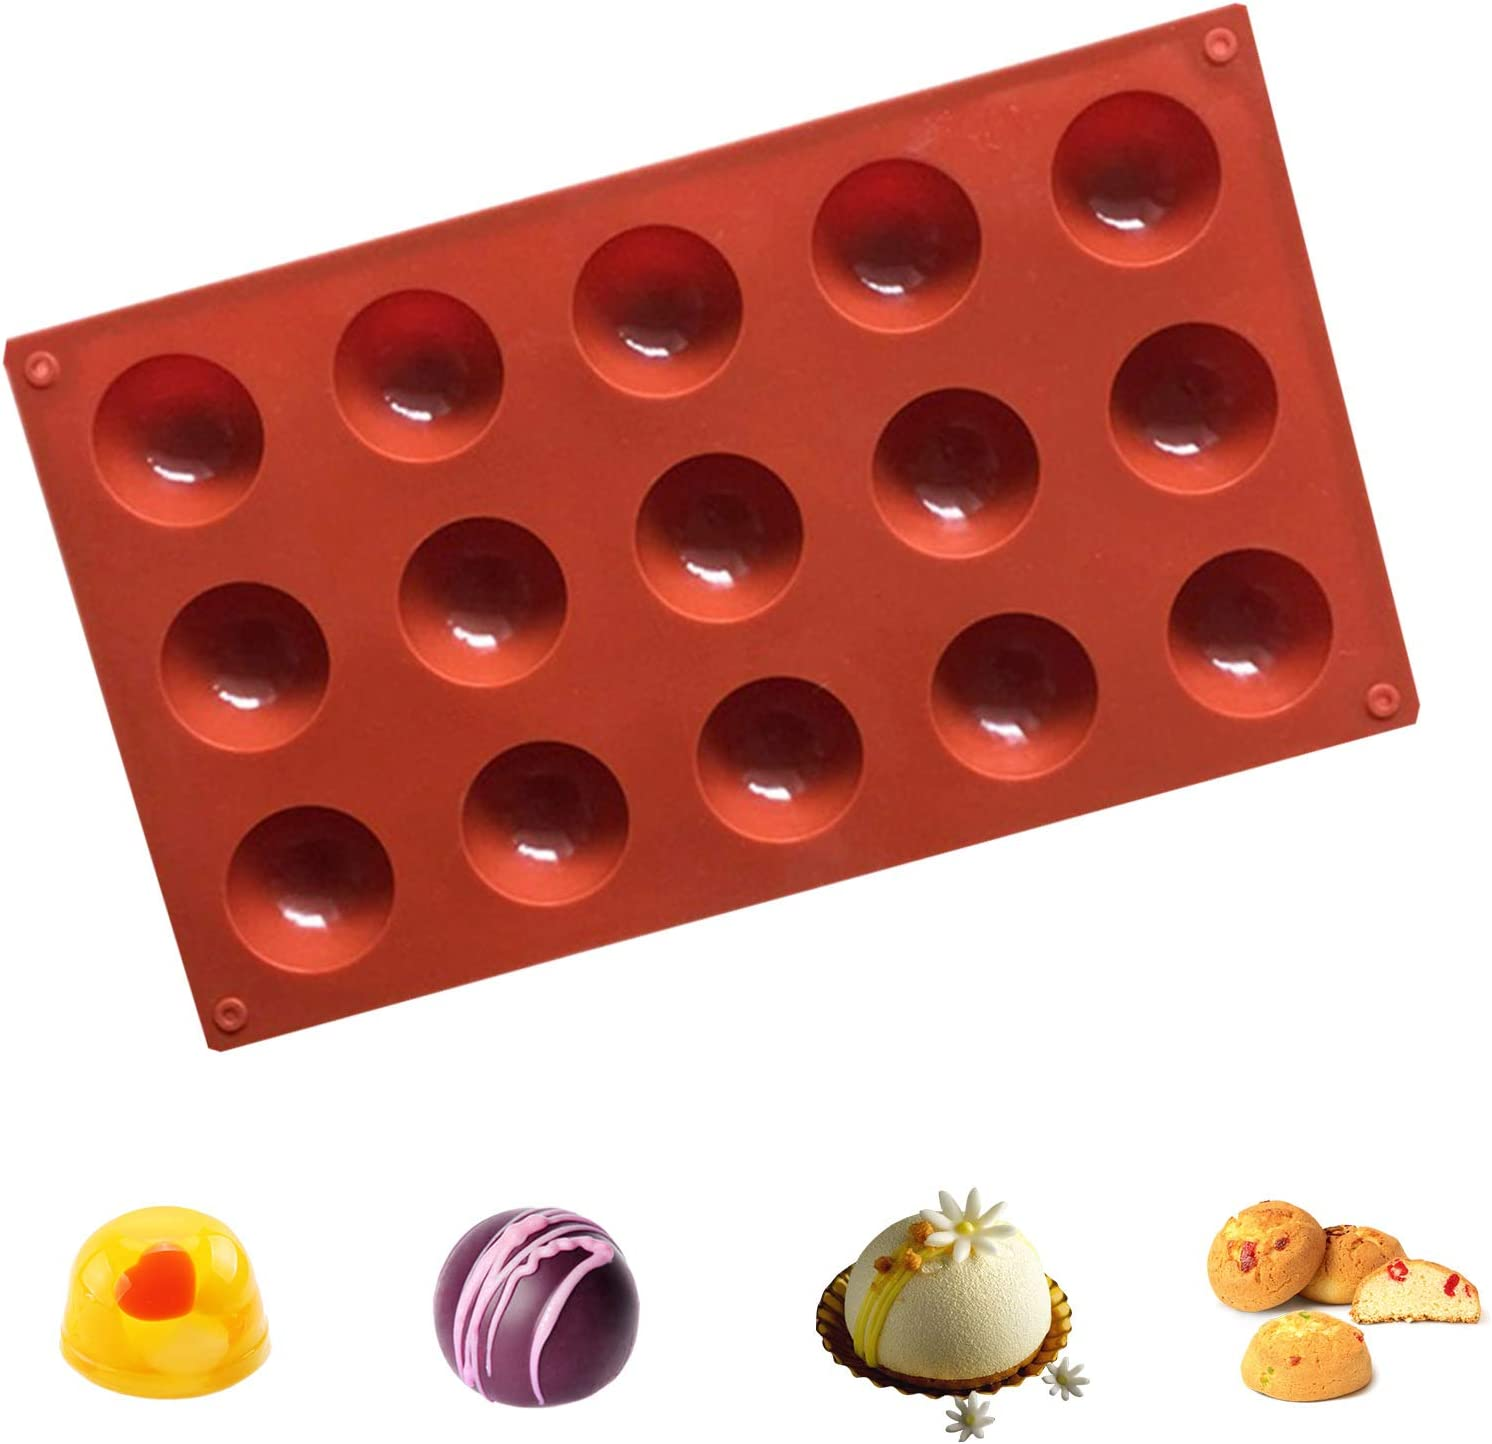 NMFIN Silicone Mold Cake Non-Stick Bakeware Mold for Making Dome Mousse 3 Pack Semi Sphere Silicone DIY Mold 6 Holes, 15 Holes, 24 Holes Chocolate Jelly